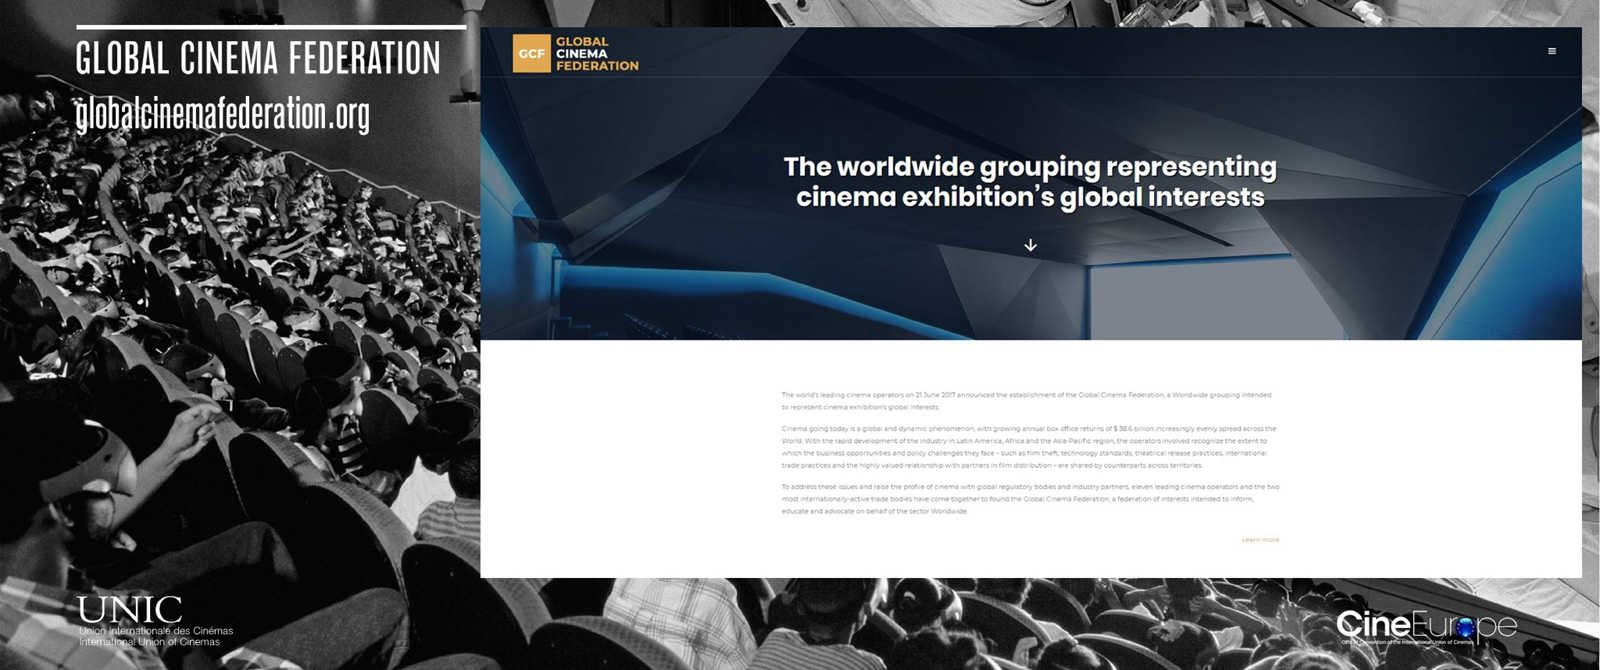 CineEurope 2018 Keynote - Global Cinema Federation